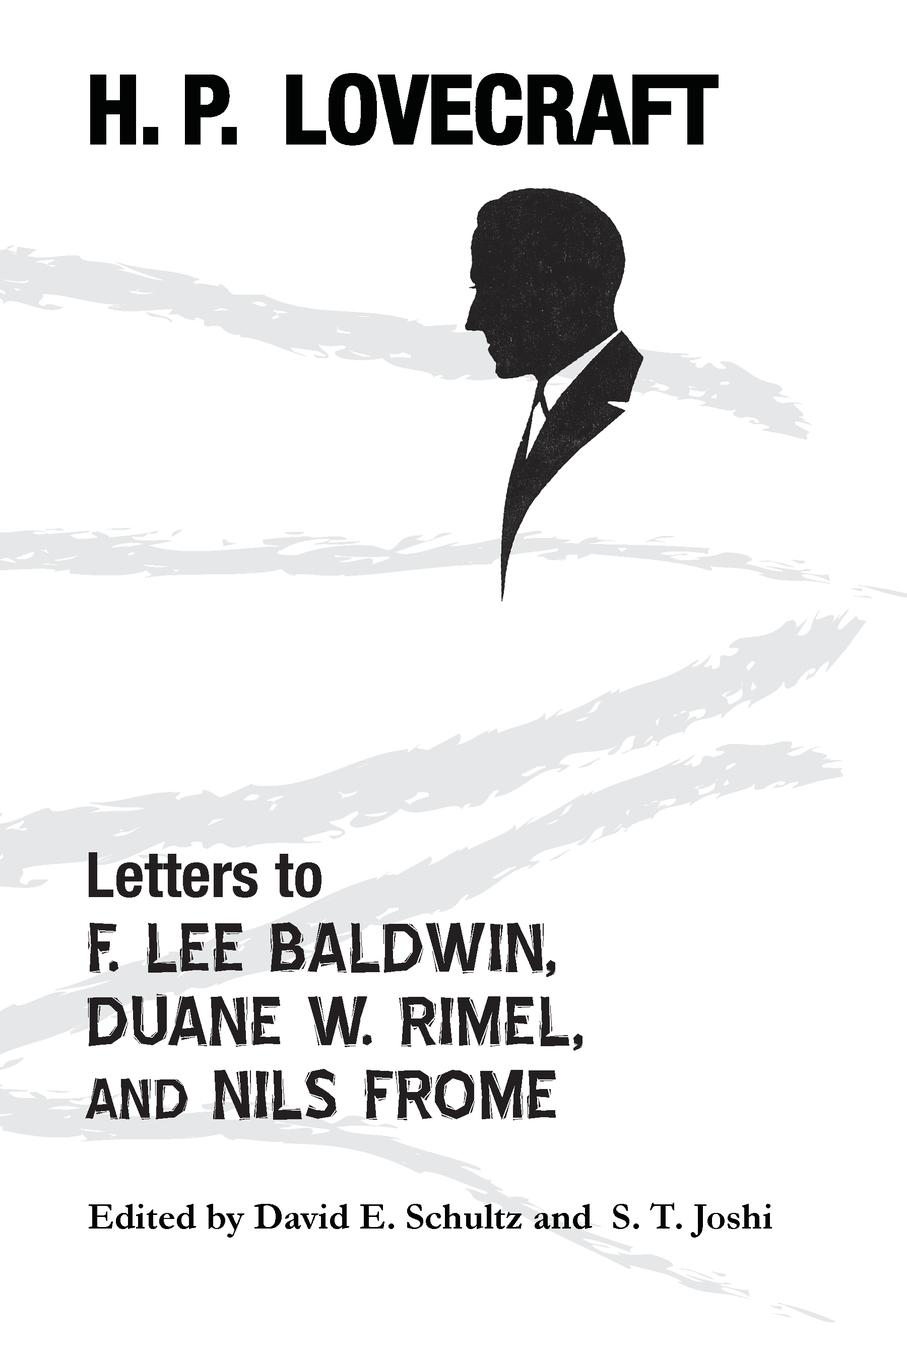 лучшая цена H. P. Lovecraft, David E. Schultz, S. T. Joshi Letters to F. Lee Baldwin, Duane W. Rimel, and Nils Frome